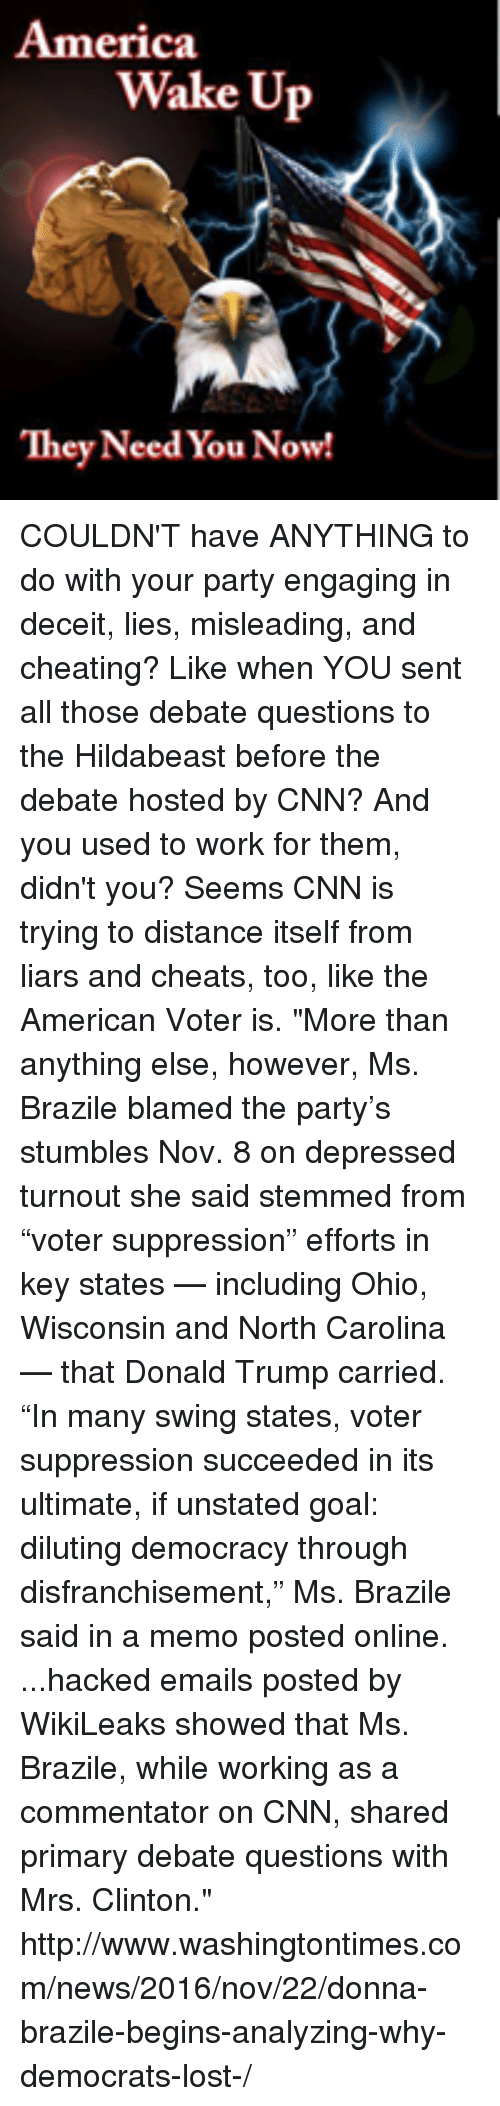 """Hildabeast: America  Wake Up  They Need You Now! COULDN'T have ANYTHING to do with your party engaging in deceit, lies, misleading, and cheating?  Like when YOU sent all those debate questions to the Hildabeast before the debate hosted by CNN?  And you used to work for them, didn't you?  Seems CNN is trying to distance itself from liars and cheats, too, like the American Voter is.  """"More than anything else, however, Ms. Brazile blamed the party's stumbles Nov. 8 on depressed turnout she said stemmed from """"voter suppression"""" efforts in key states — including Ohio, Wisconsin and North Carolina — that Donald Trump carried.  """"In many swing states, voter suppression succeeded in its ultimate, if unstated goal: diluting democracy through disfranchisement,"""" Ms. Brazile said in a memo posted online.  ...hacked emails posted by WikiLeaks showed that Ms. Brazile, while working as a commentator on CNN, shared primary debate questions with Mrs. Clinton.""""  http://www.washingtontimes.com/news/2016/nov/22/donna-brazile-begins-analyzing-why-democrats-lost-/"""